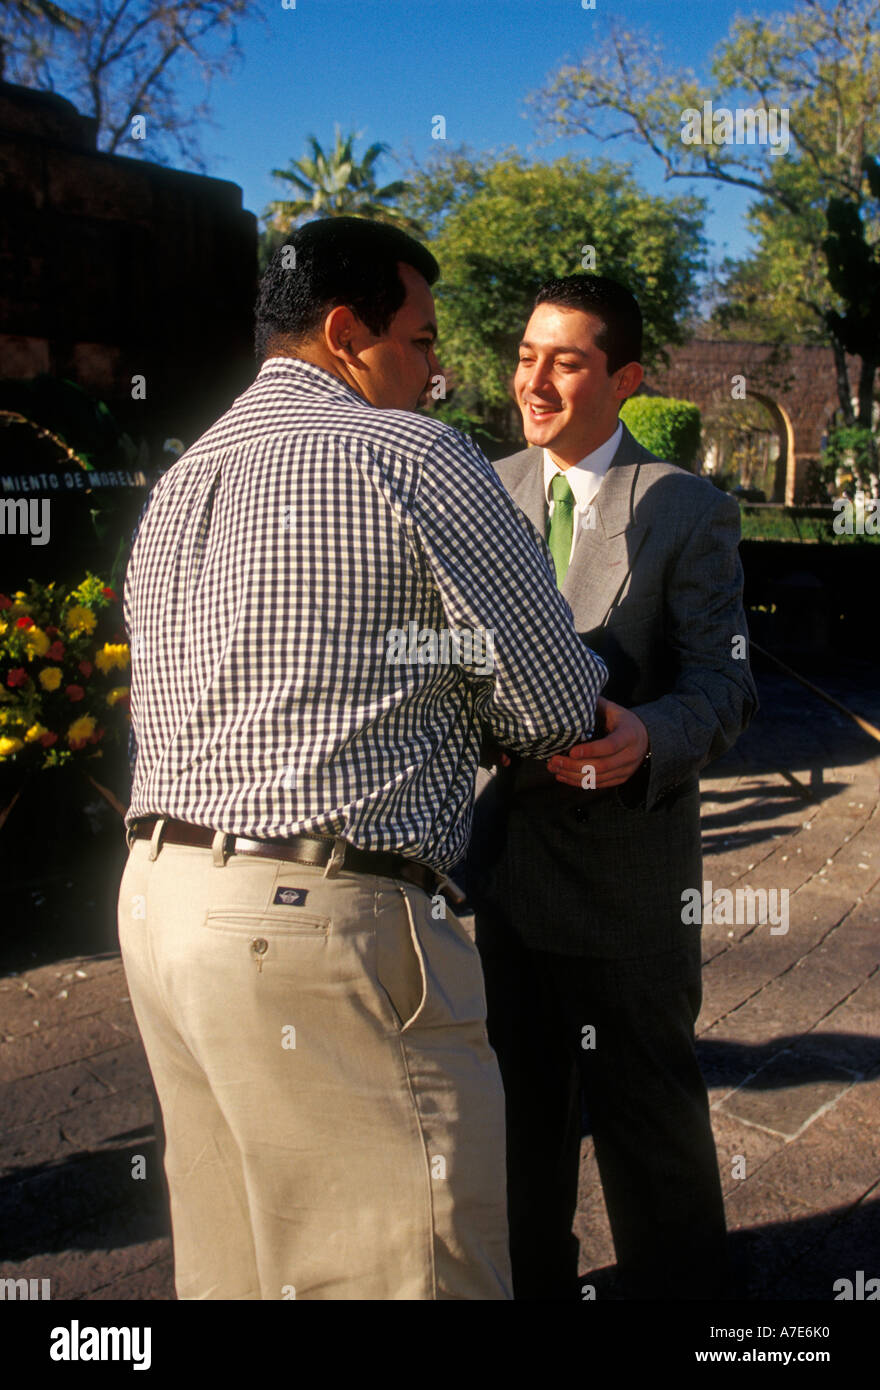 Mexicans Greeting Stock Photos Mexicans Greeting Stock Images Alamy